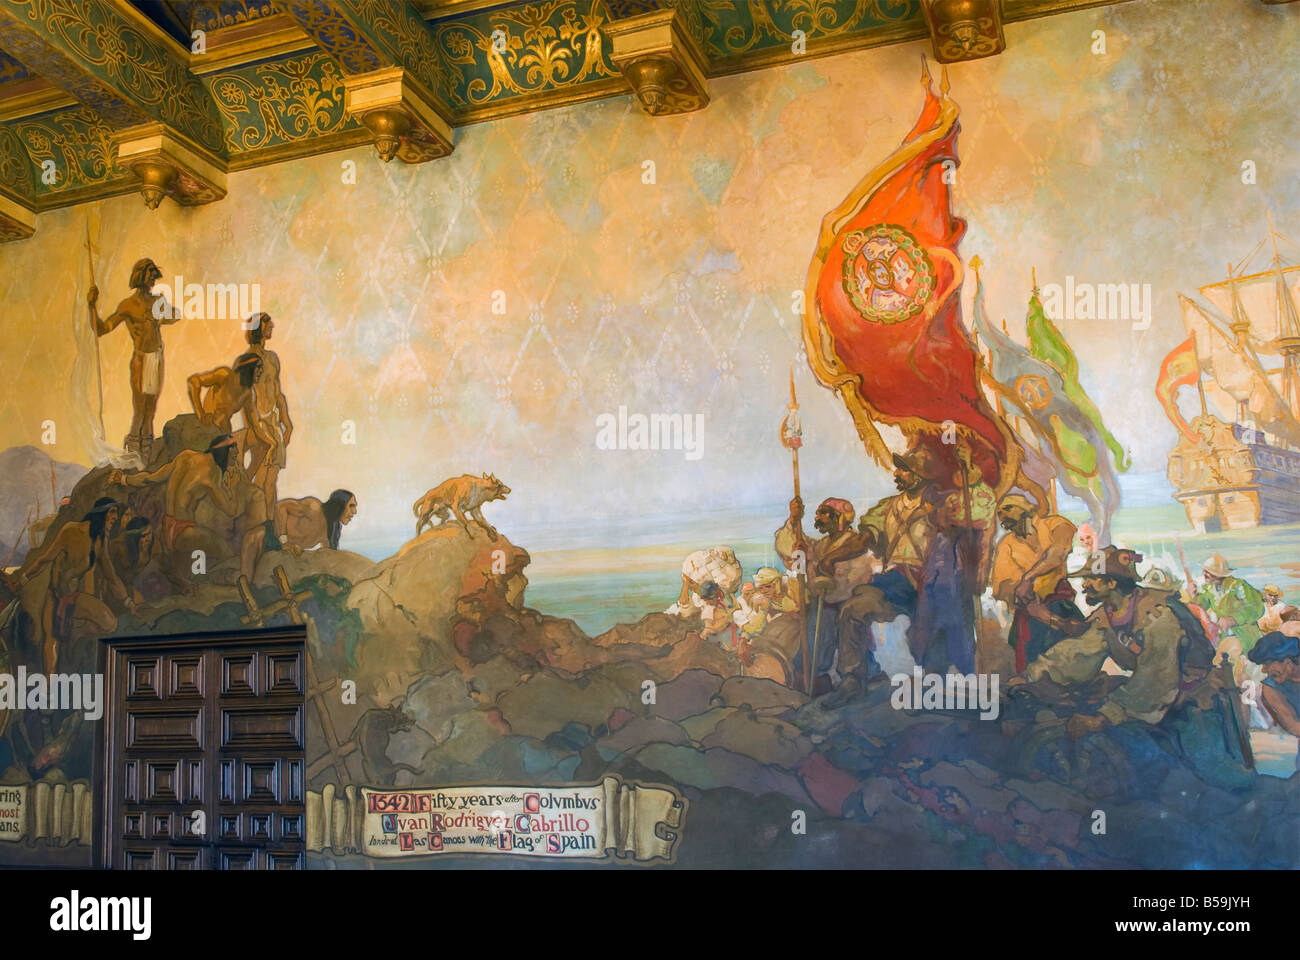 Mural of cabrillo arrival at las canoas and canalino indians at mural stock photo royalty free for Mural room santa barbara